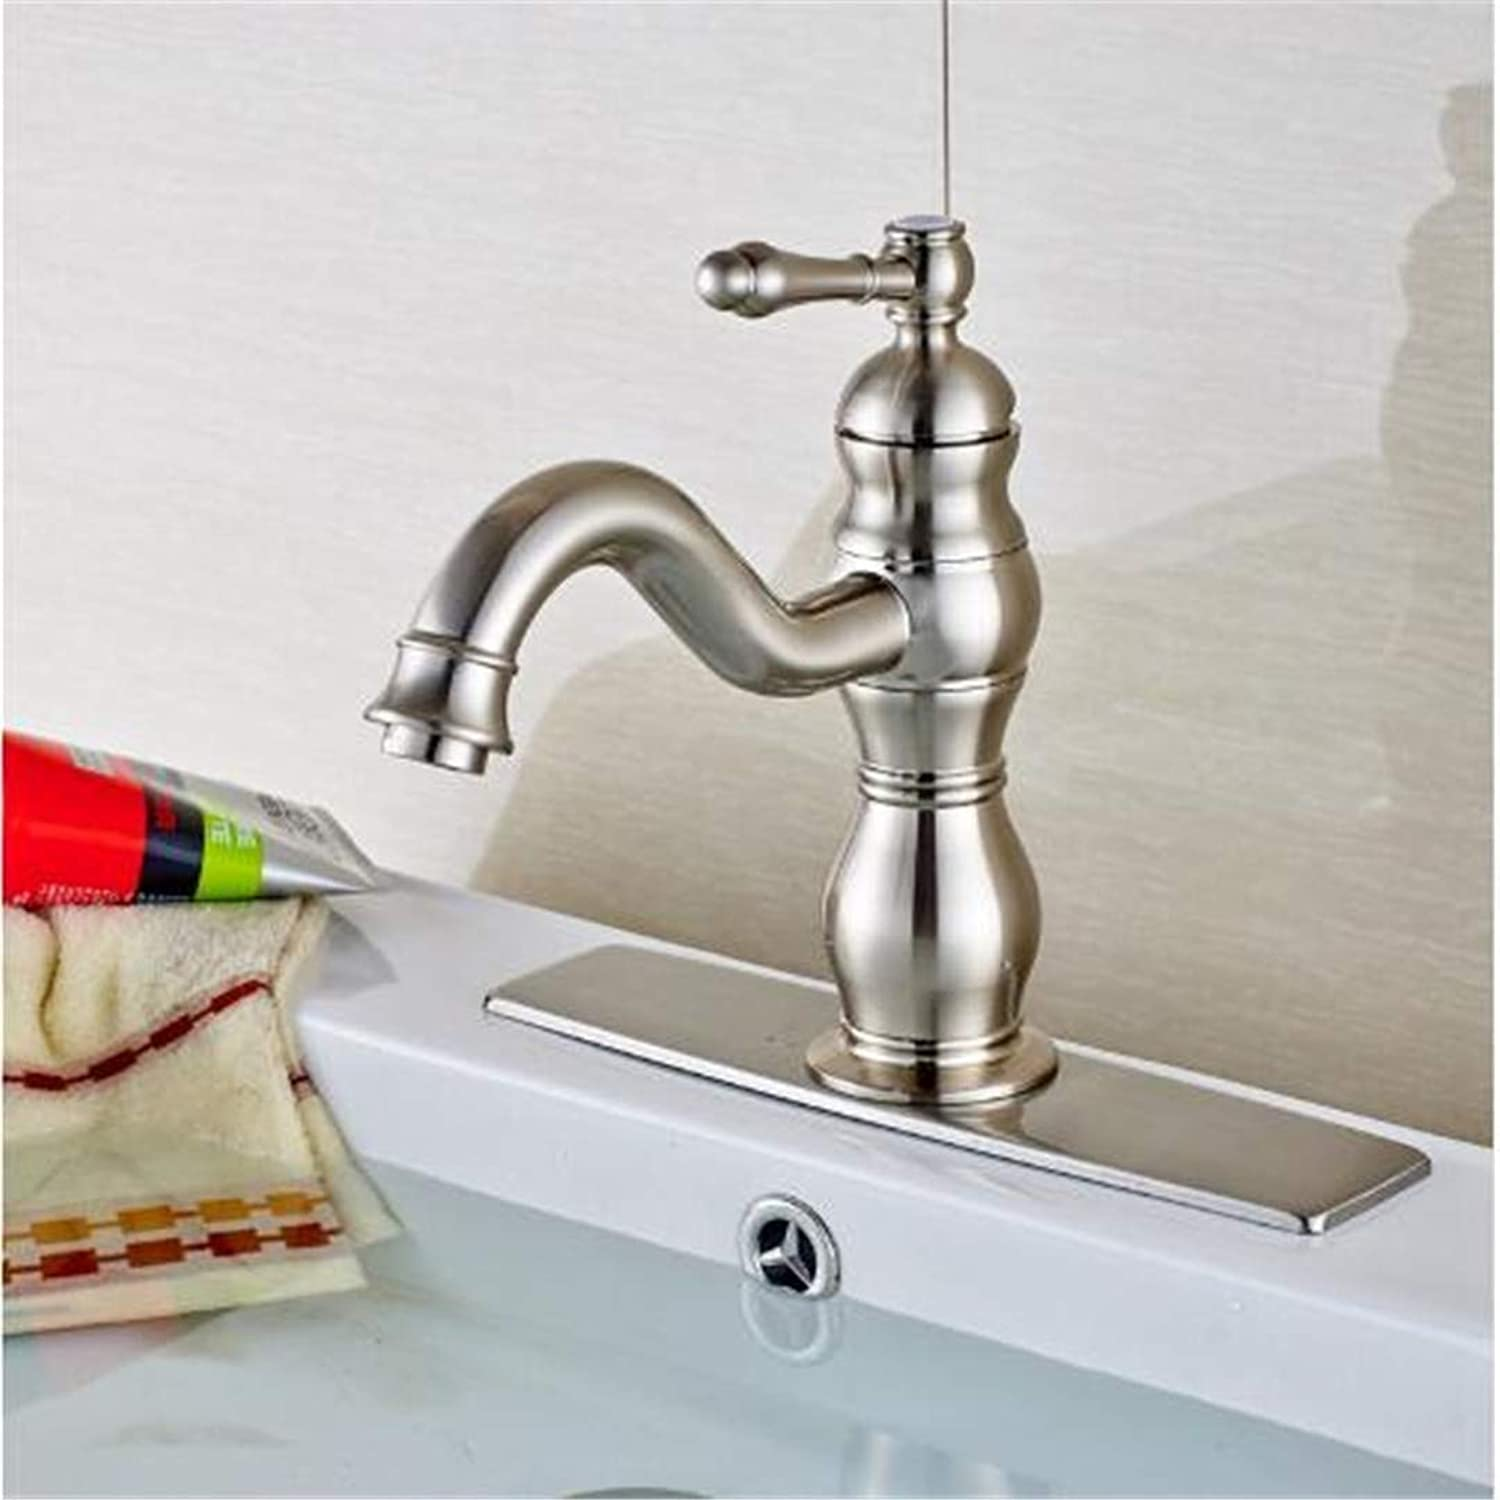 Oudan Bathroom Basin Faucet Kitchen Faucet Hot and Cold Taps Crossdeck Mounted Brushed Nickel Waterfall Sink Faucet Mixer Tap with Square Plate (color   -, Size   -)